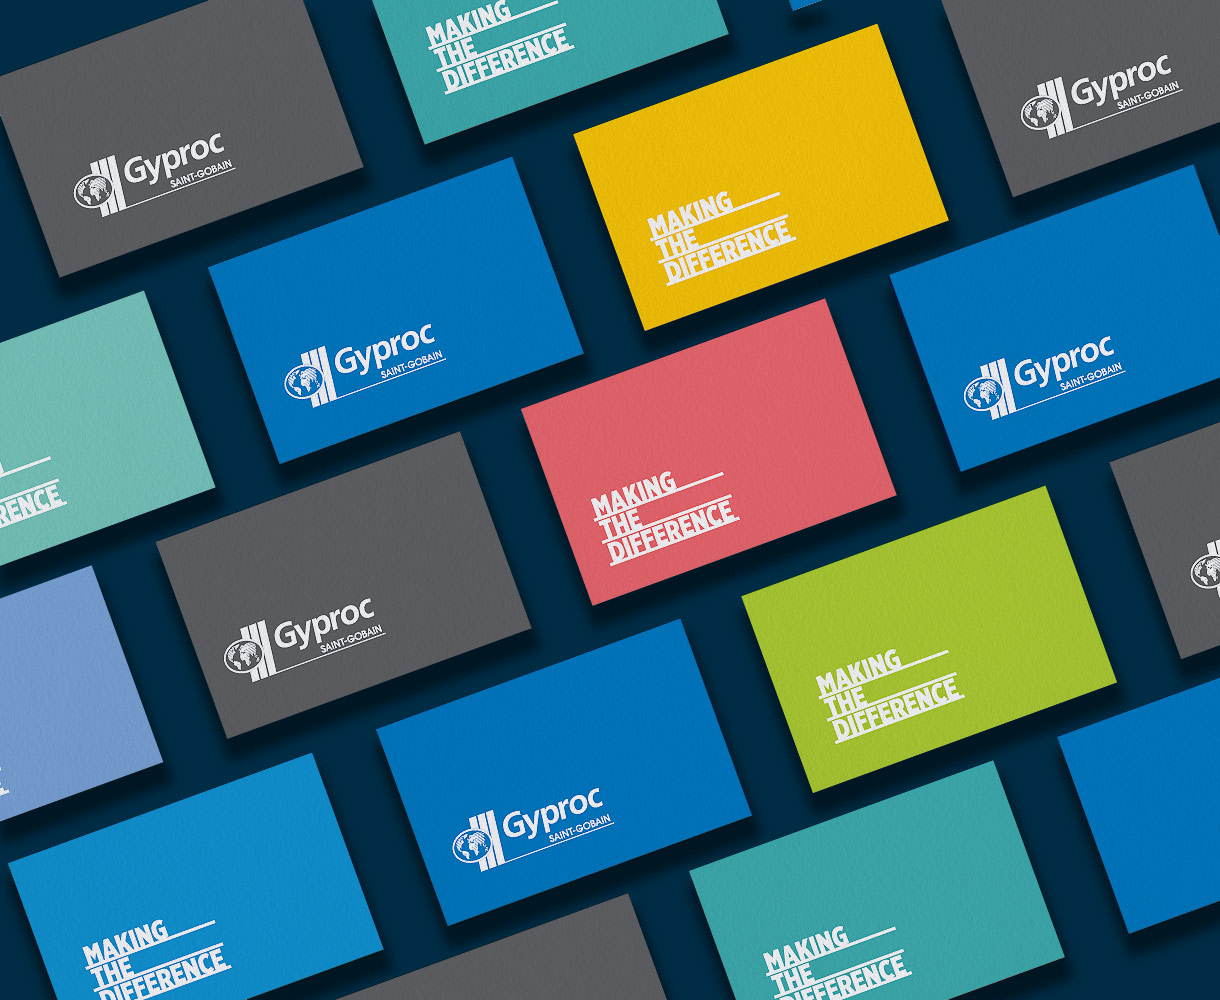 Campaign Design Gyproc Making the Difference business cards stationery